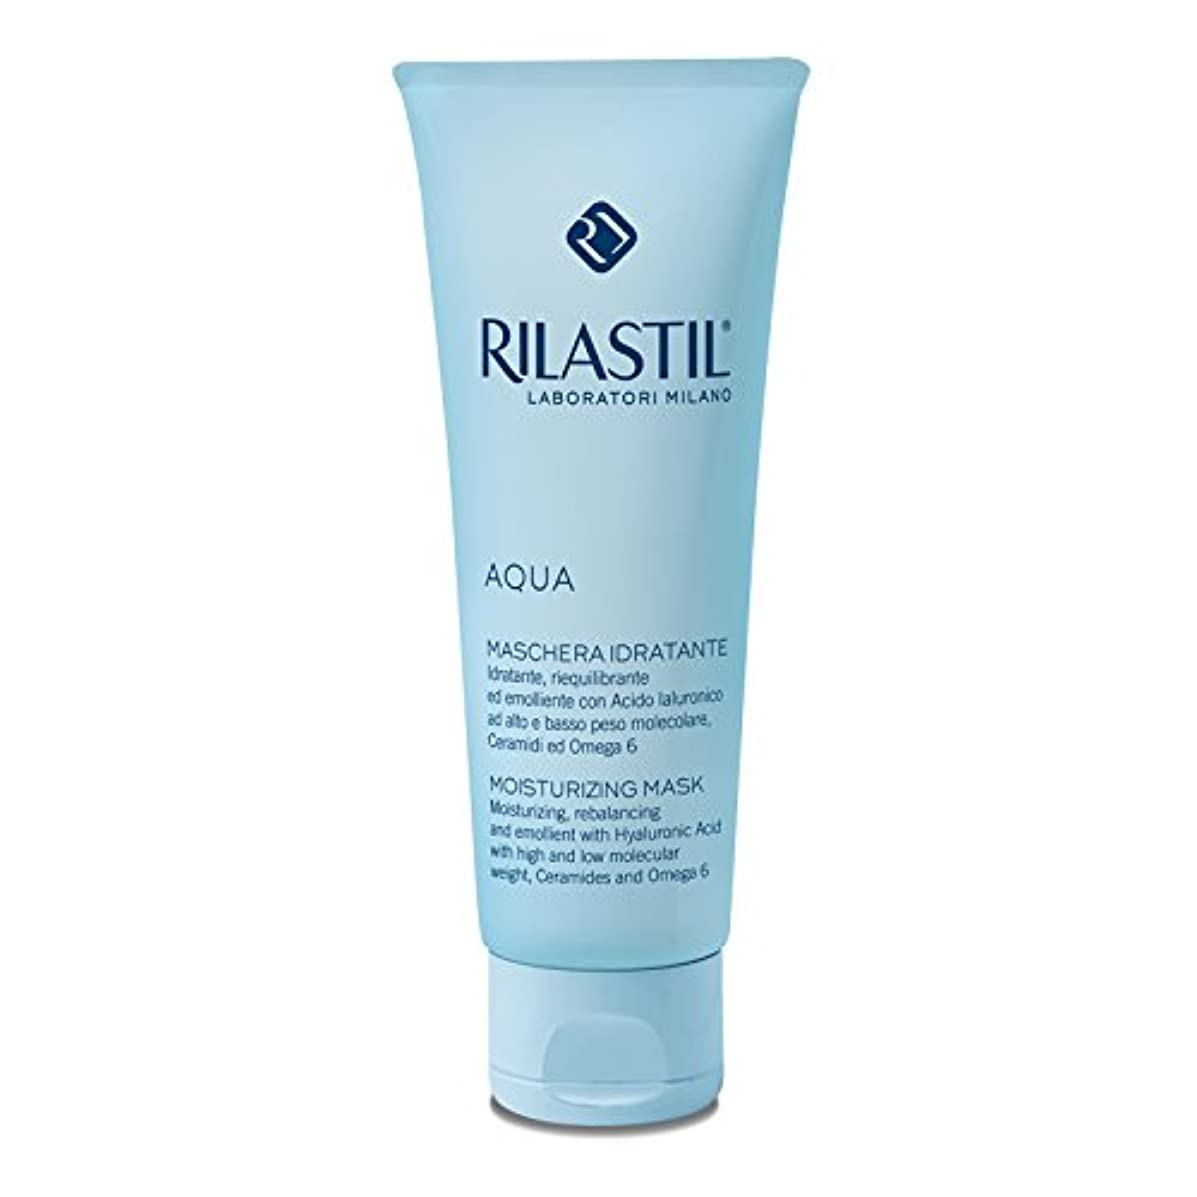 肥料過言別のRilastil - AQUA Moisturizing Mask (75 ml) [並行輸入品]